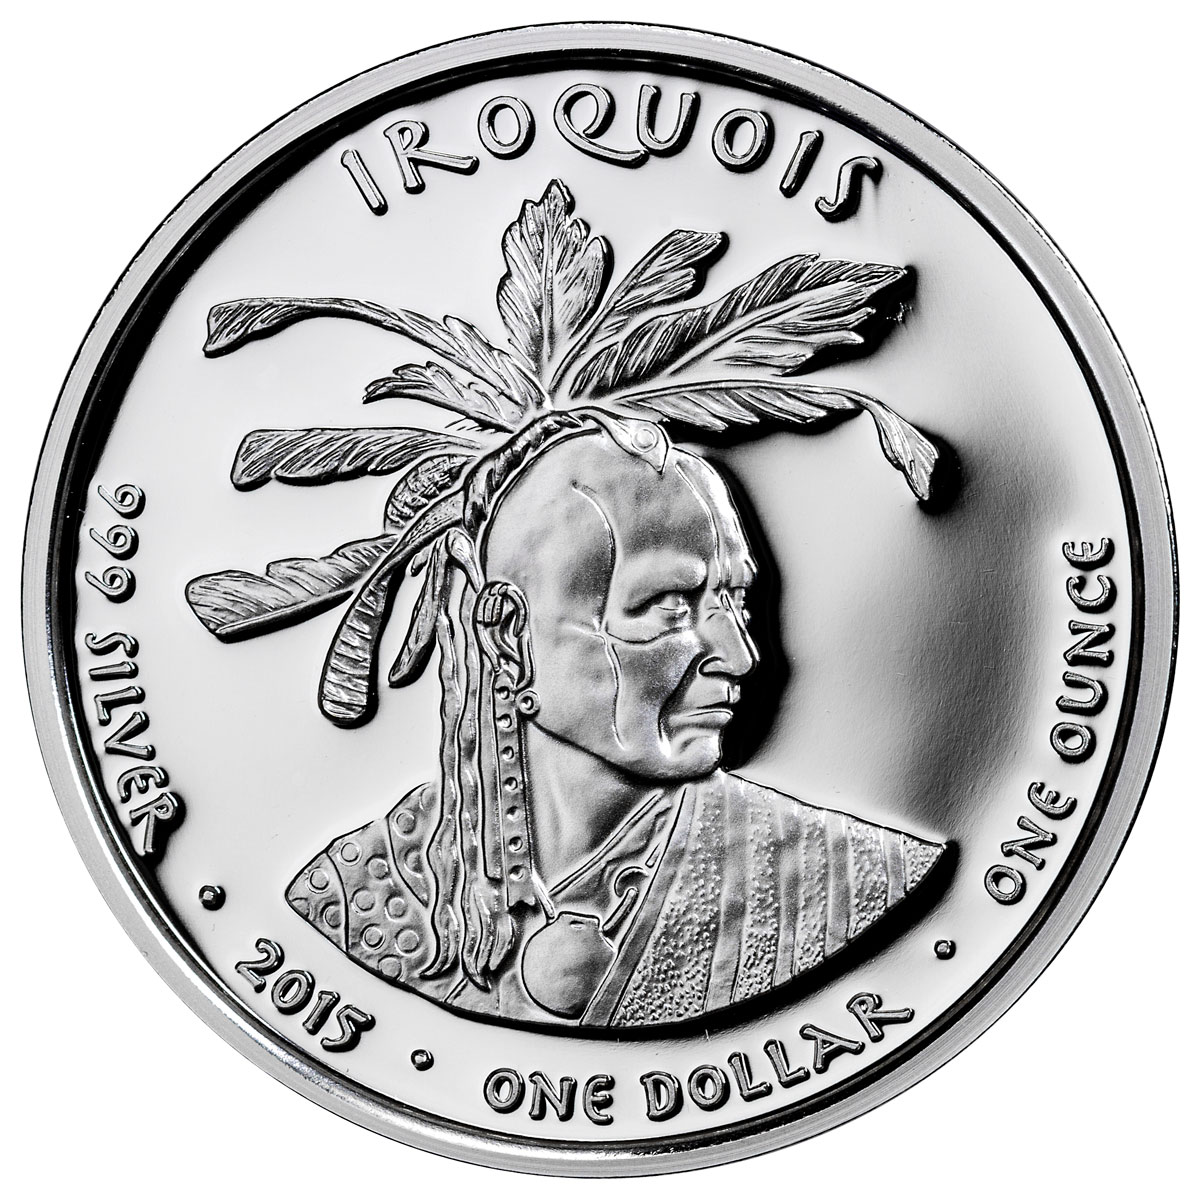 2015 Native American Silver Dollar - Pennsylvania Iroquois - Skunk 1 oz Silver Proof Coin GEM Proof Original Mint Capsule